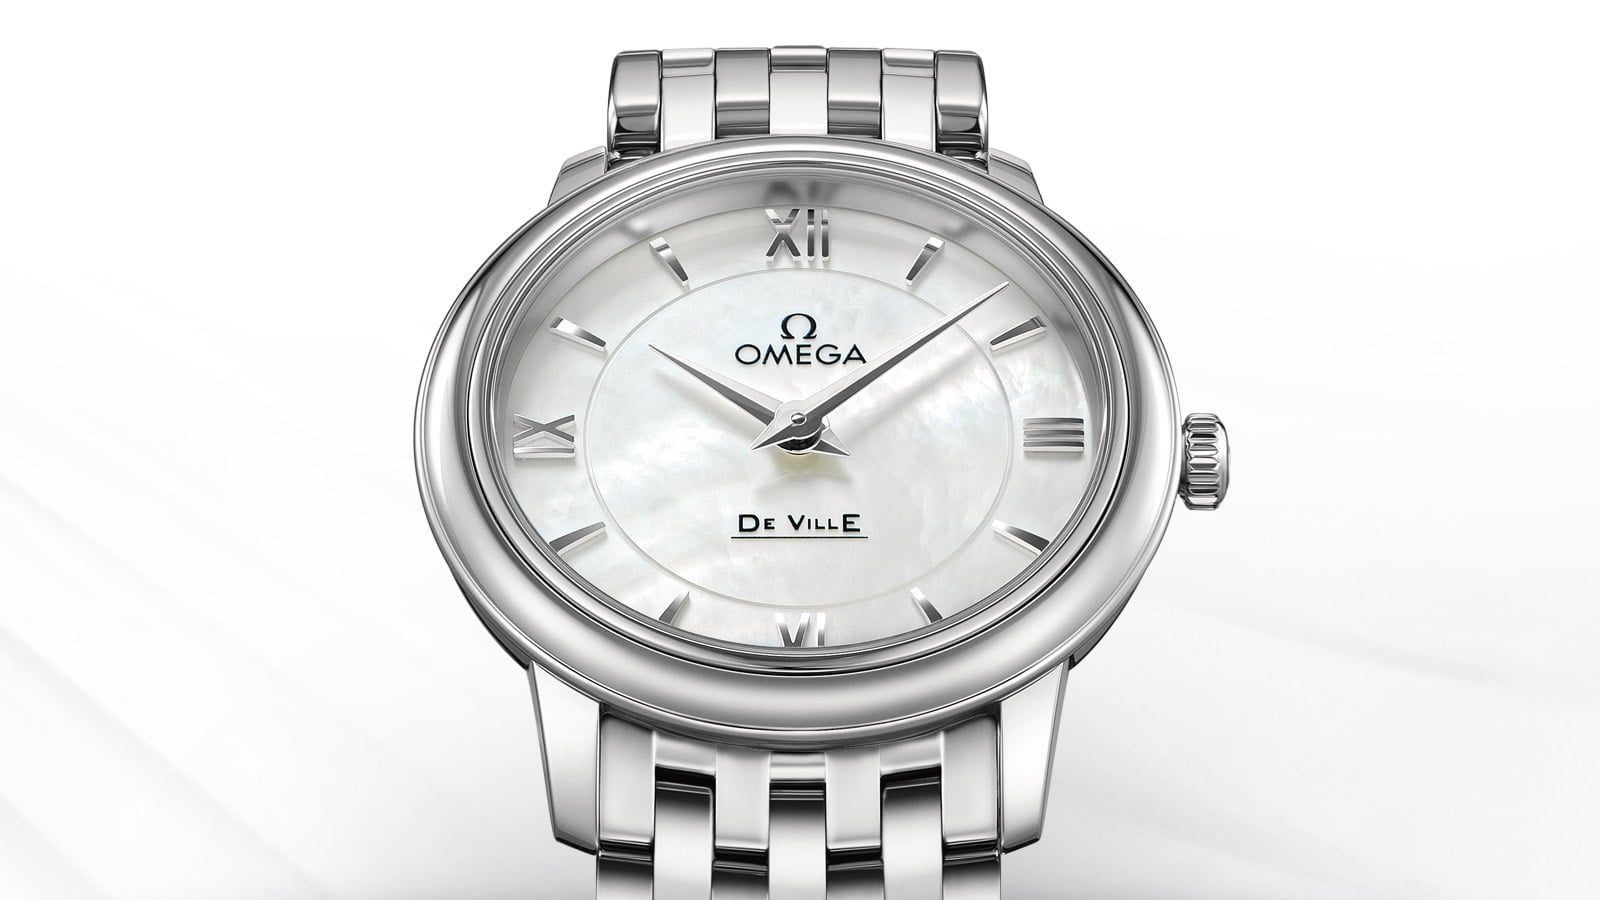 THE DE VILLE PRESTIGE CO-AXIAL COLLECTION